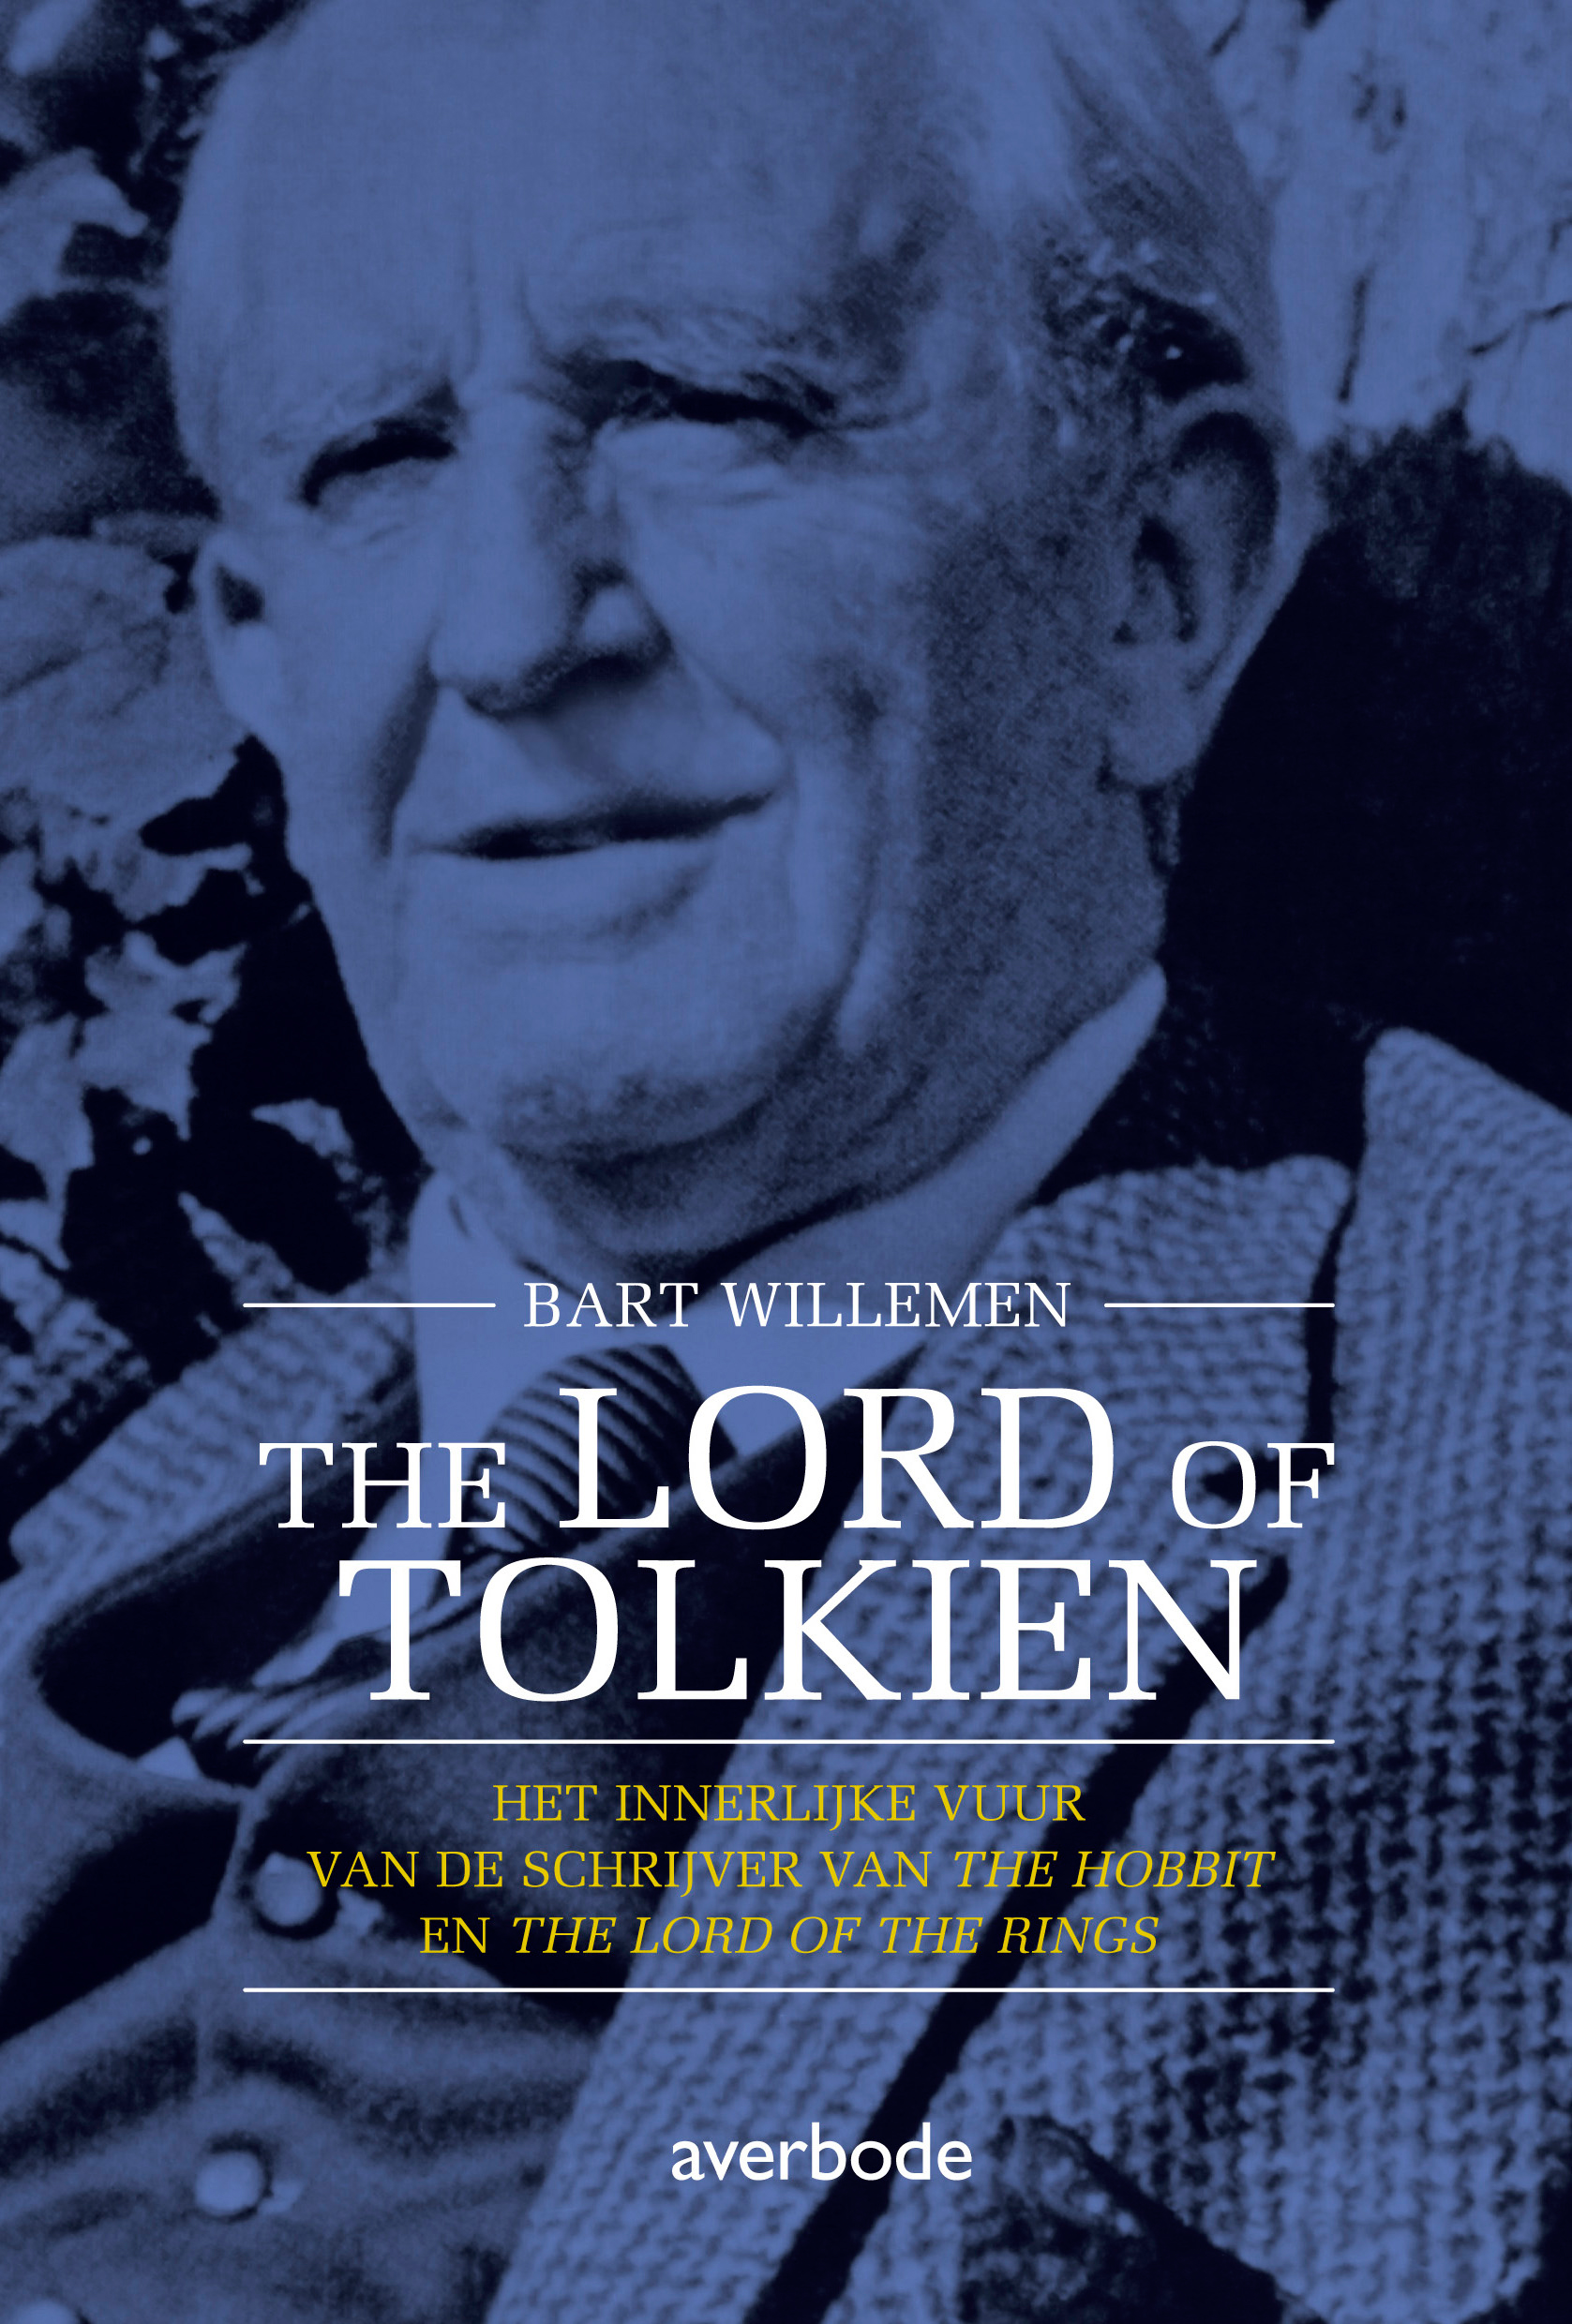 Citaten Uit Lord Of The Rings : The lord of tolkien